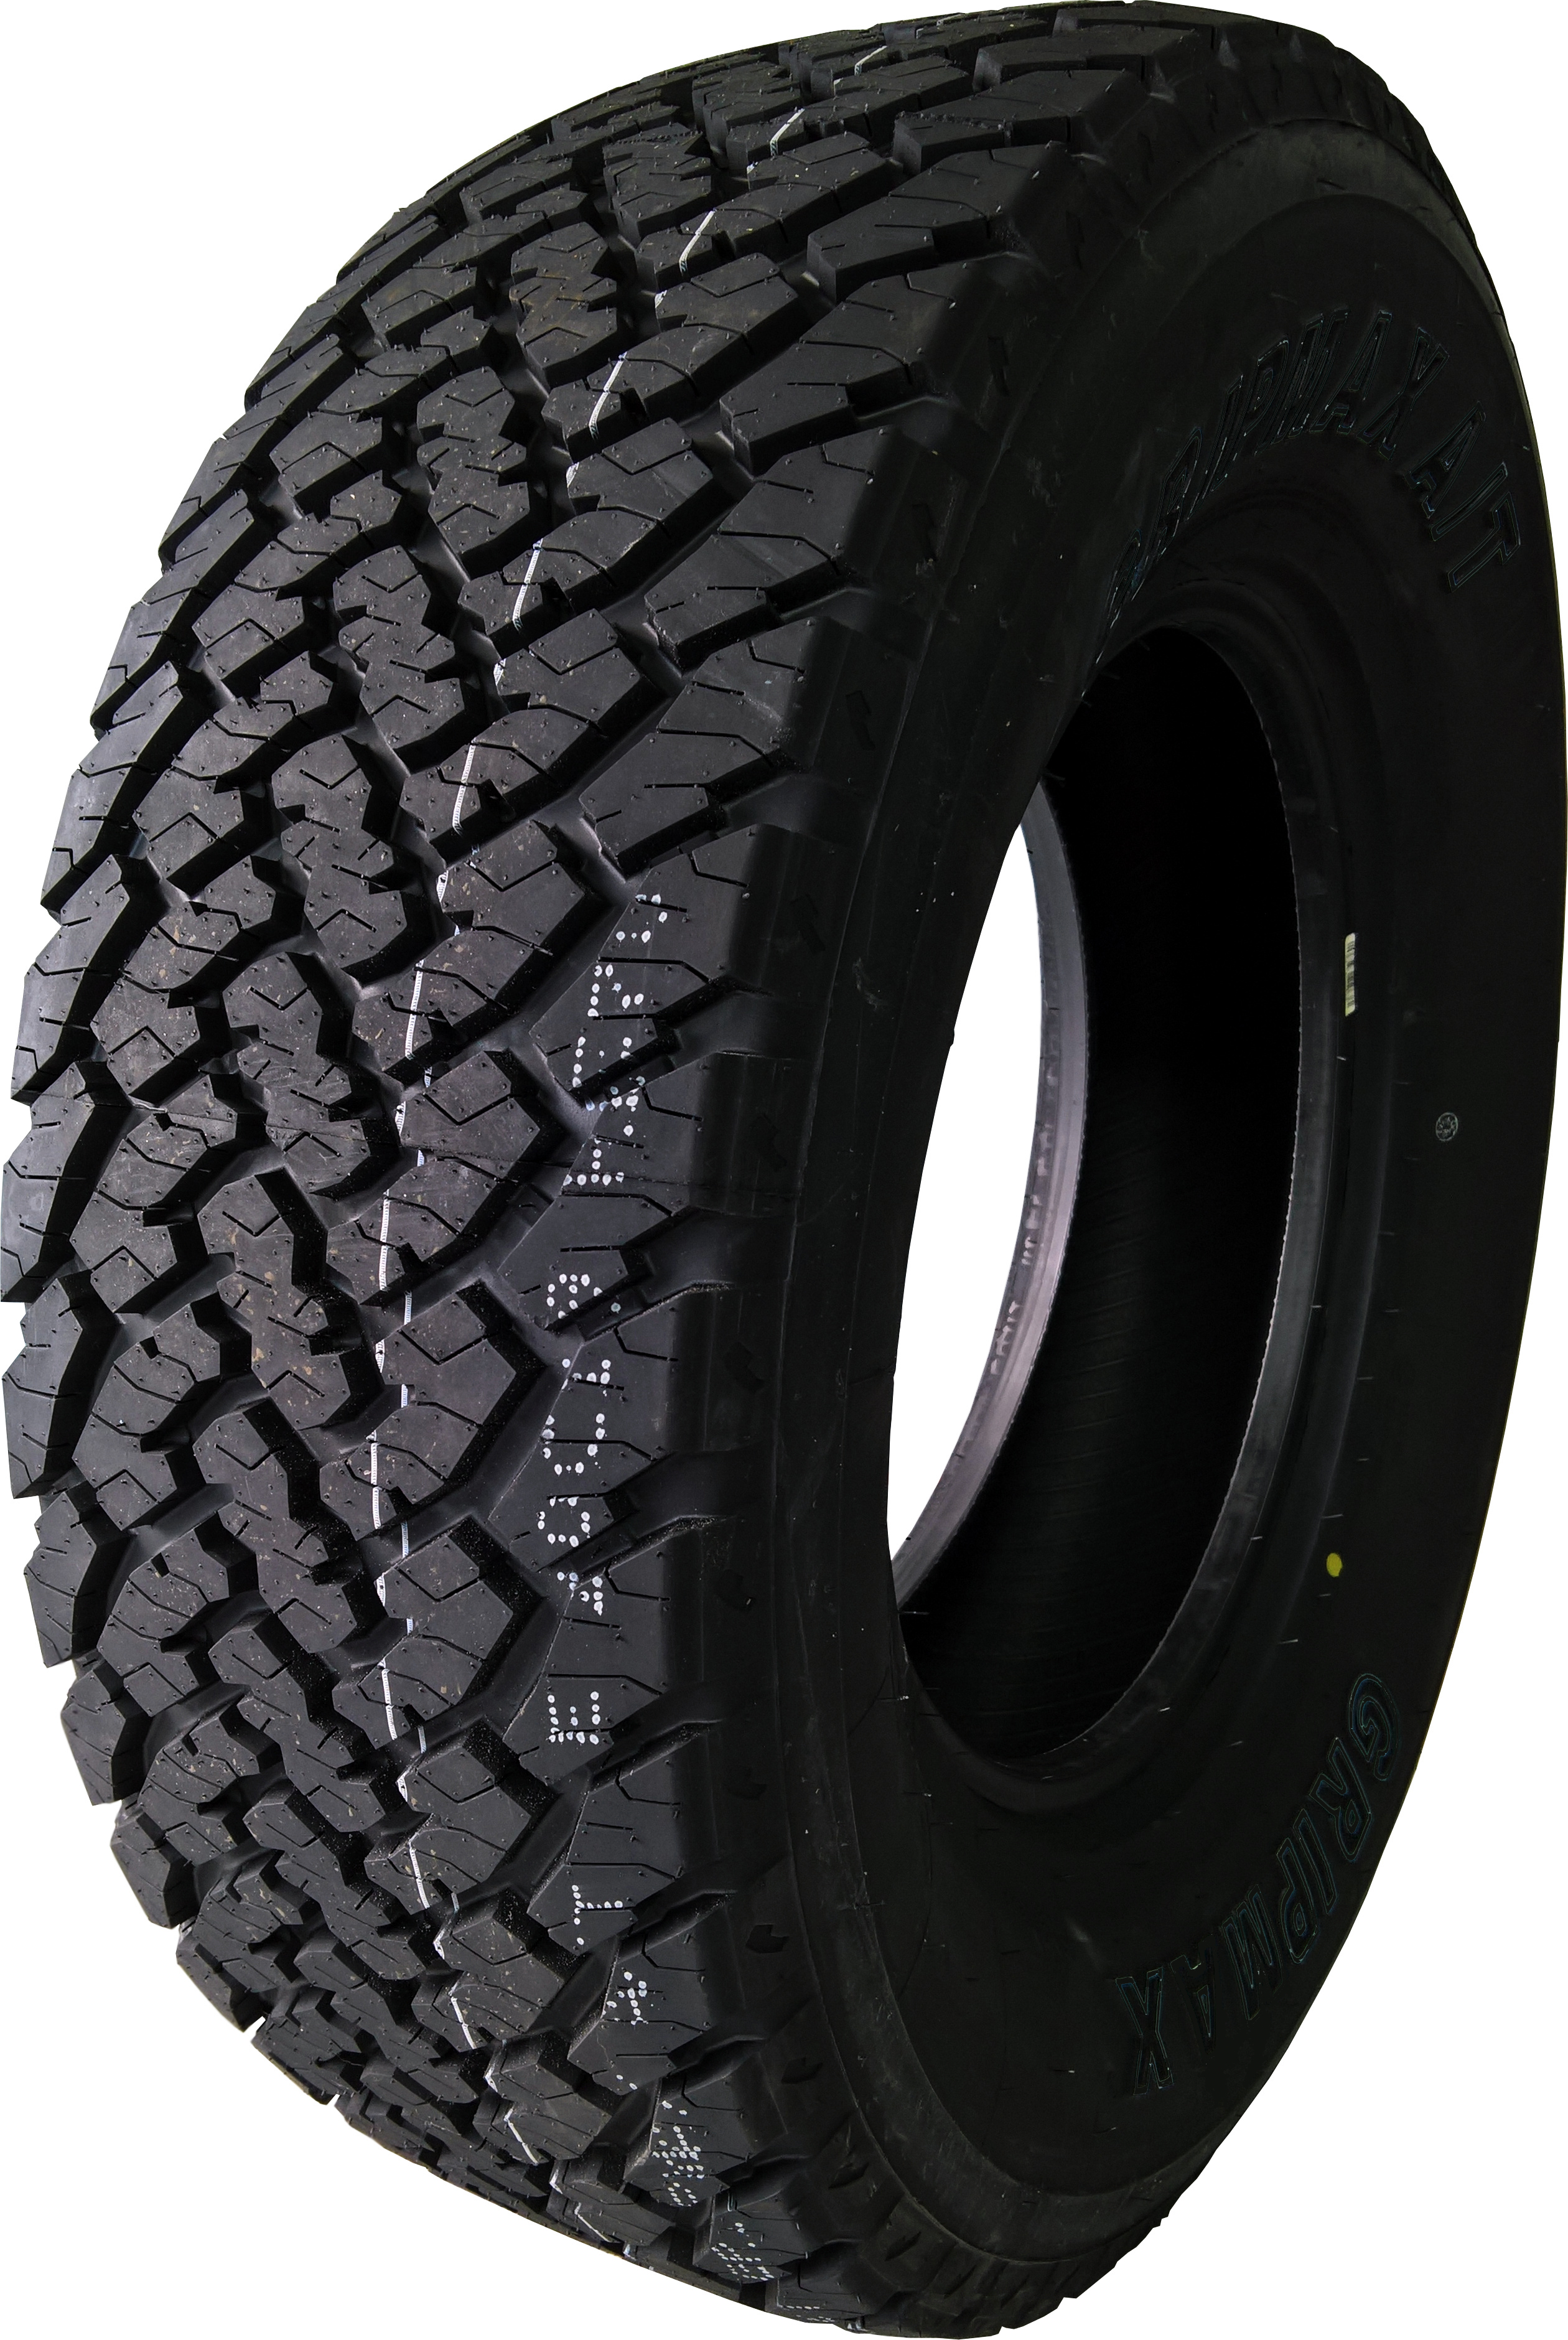 Gomme Nuove Gripmax 265/50 R20 111T Gripmax A/T BSW XL pneumatici nuovi Estivo